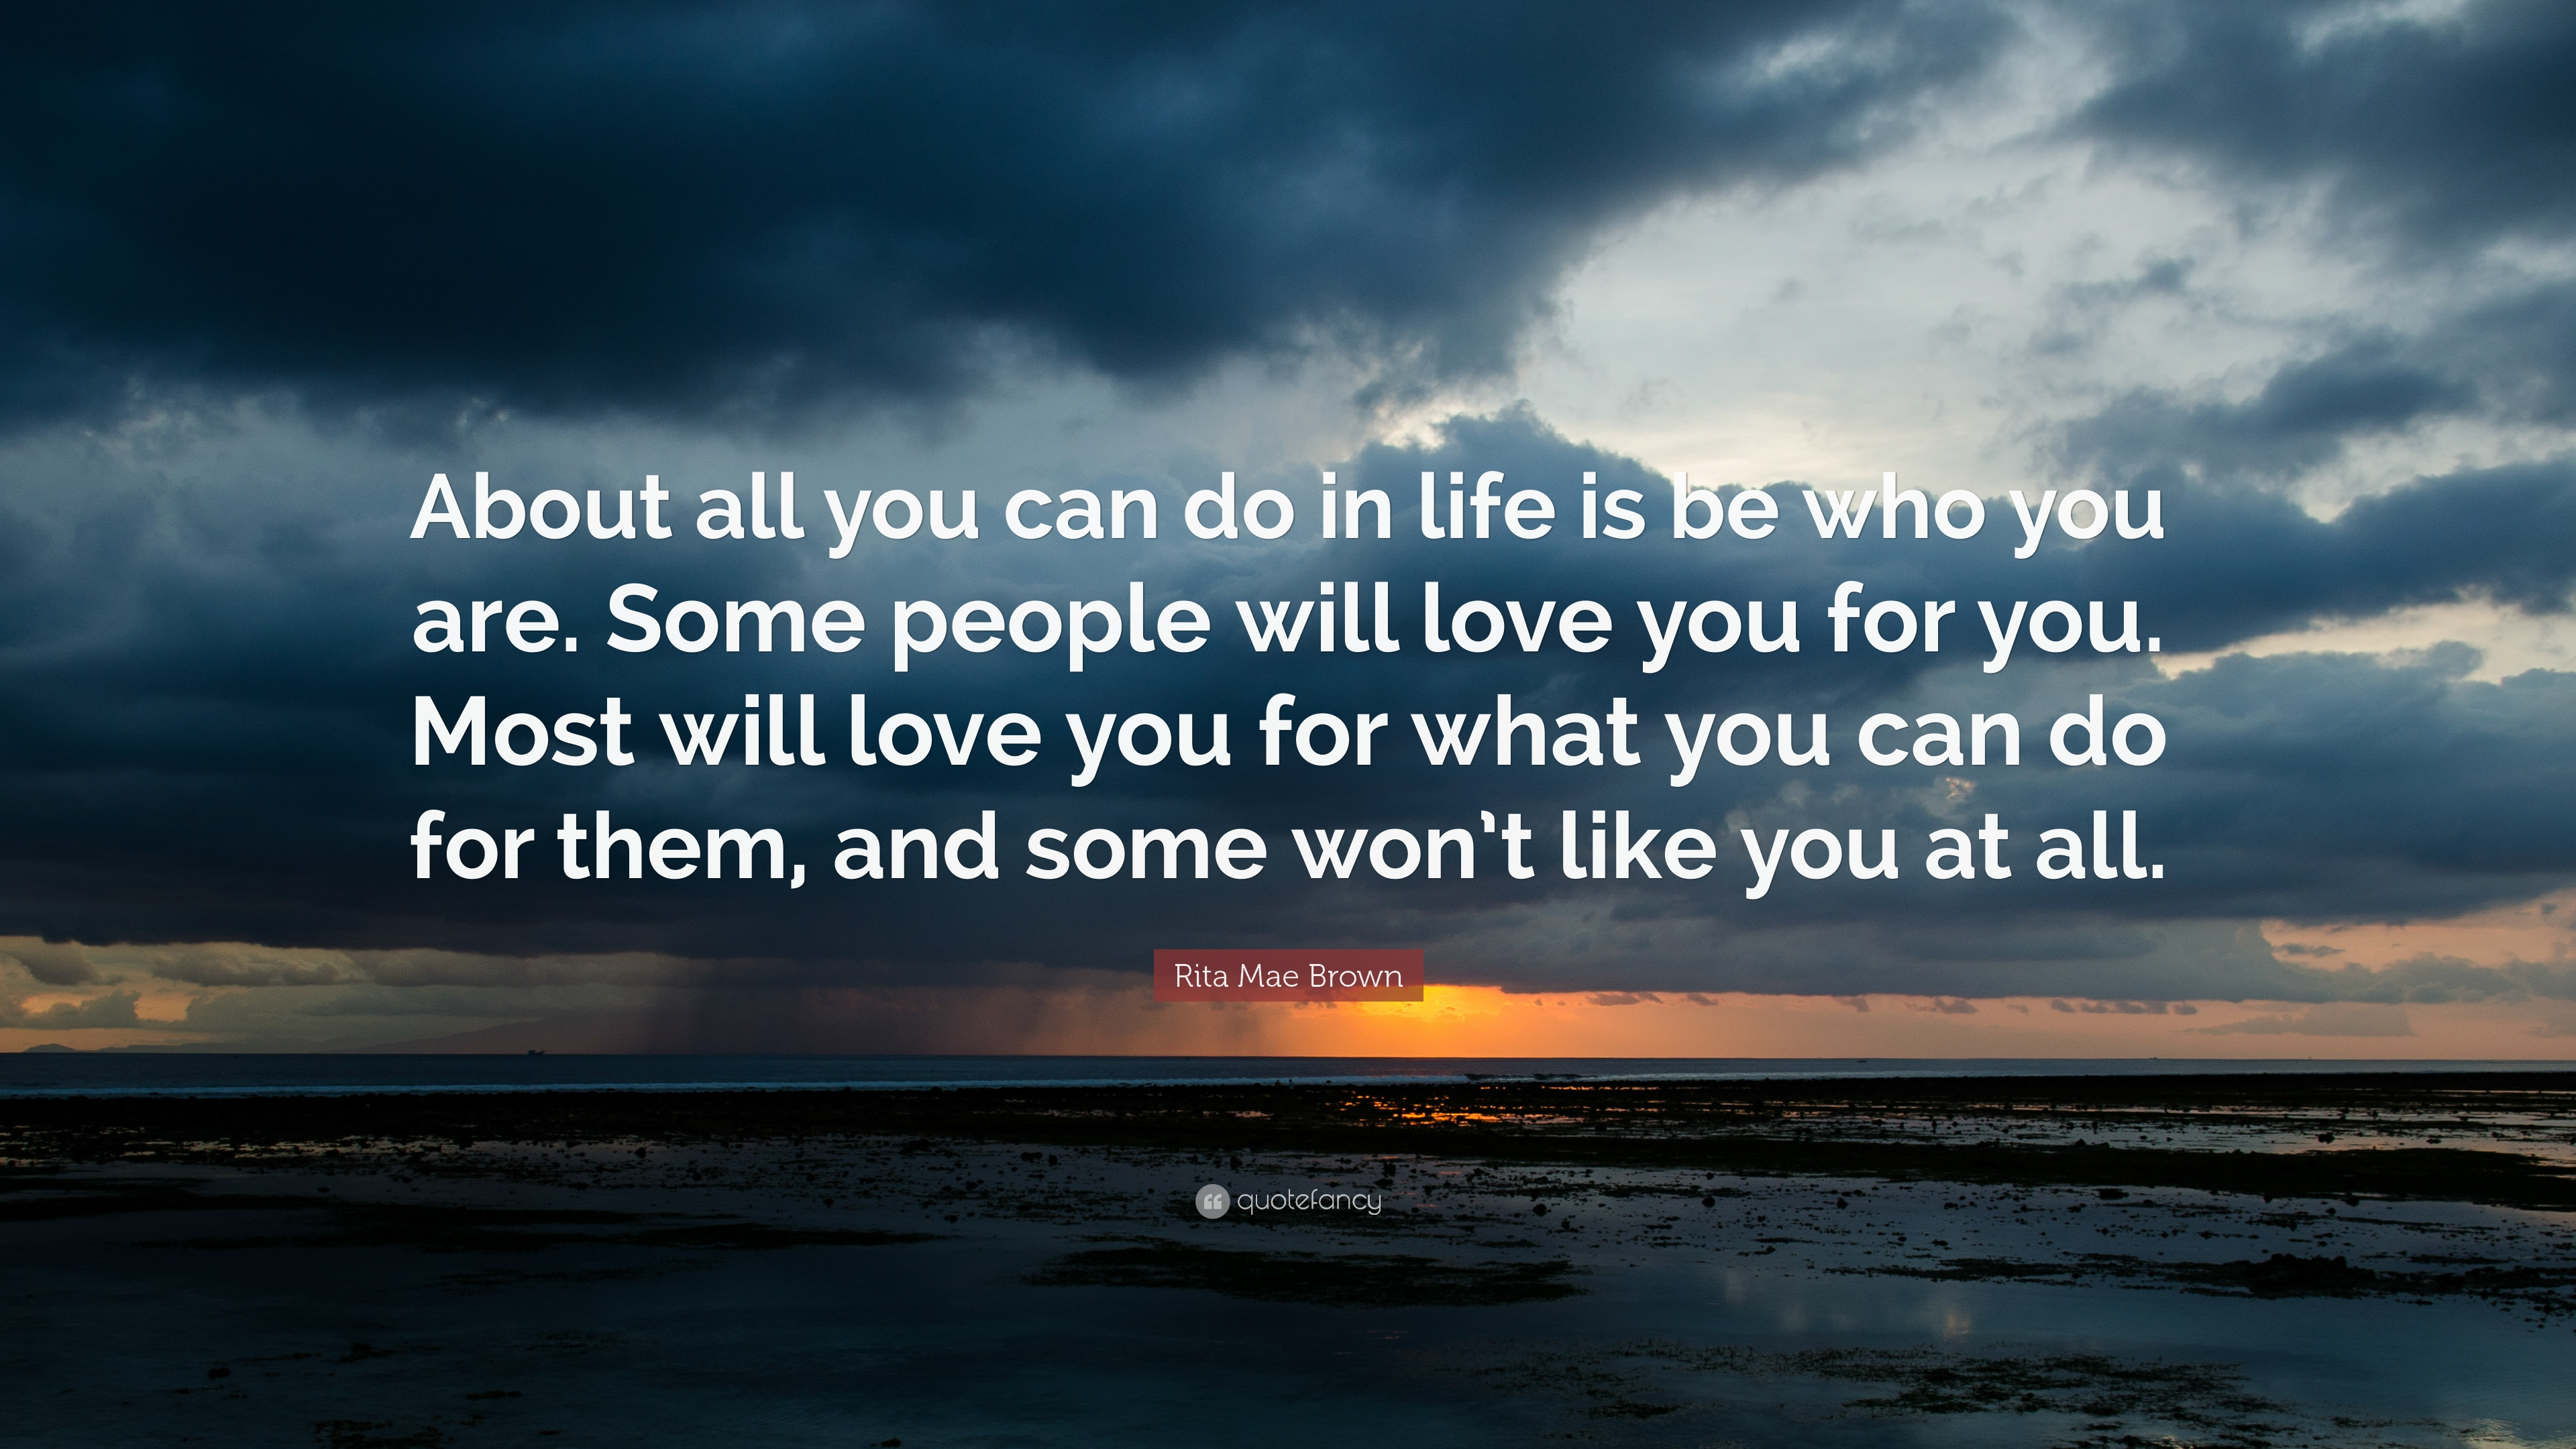 rita mae brown quote   u201cabout all you can do in life is be who you are  some people will love you